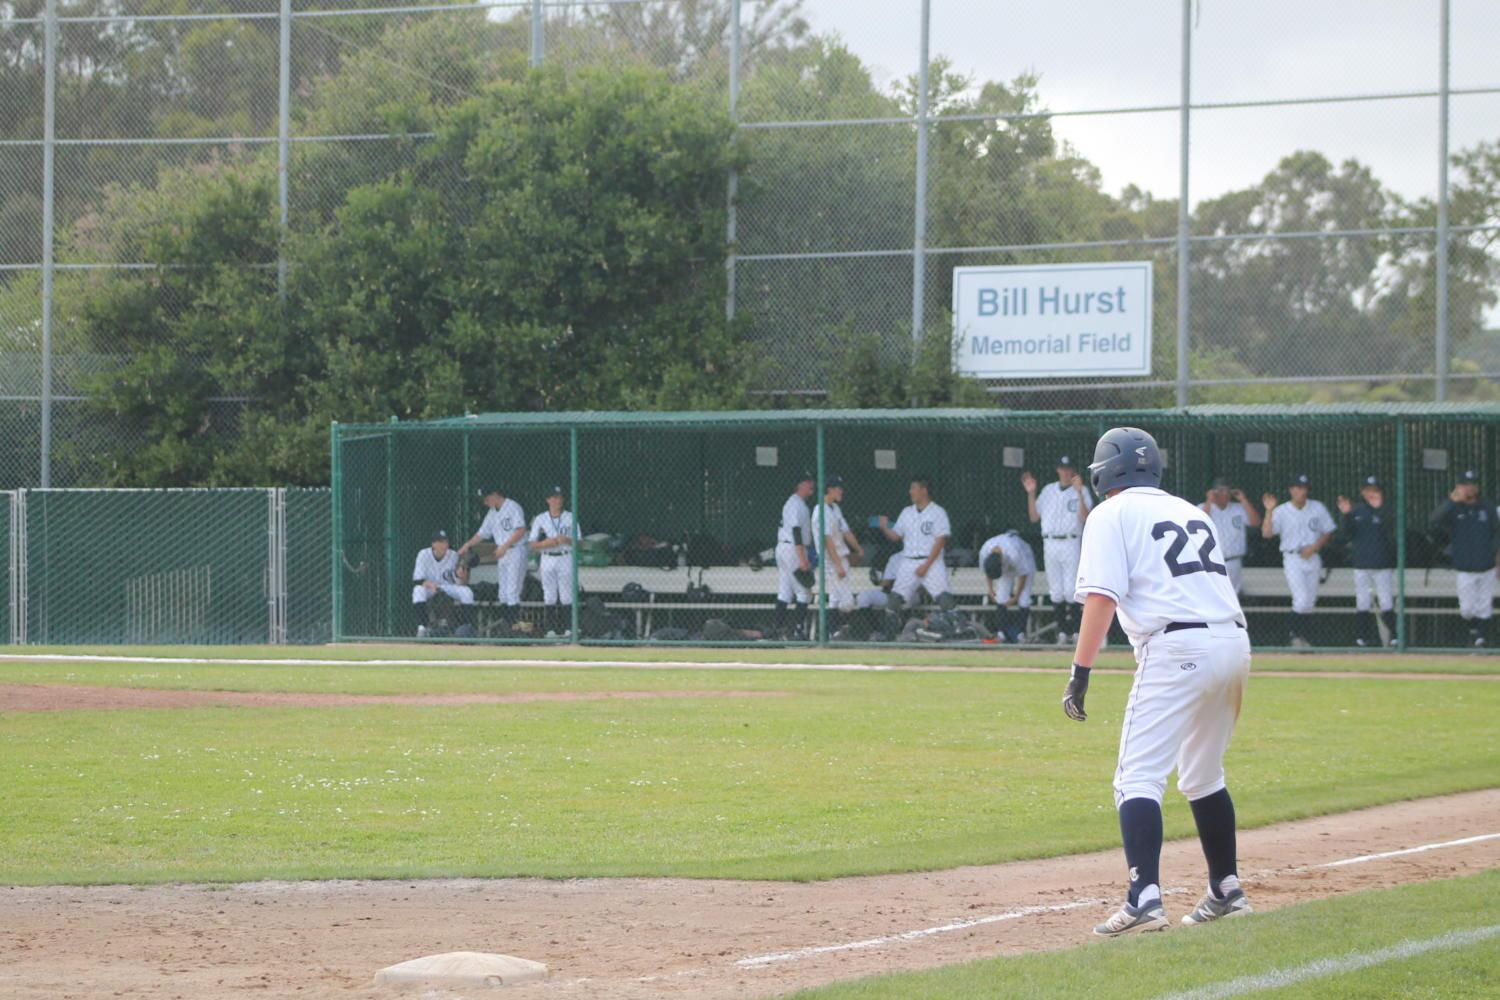 Sophomore Ryan Busser awaits the pitch so he can get a run for Carlmont.